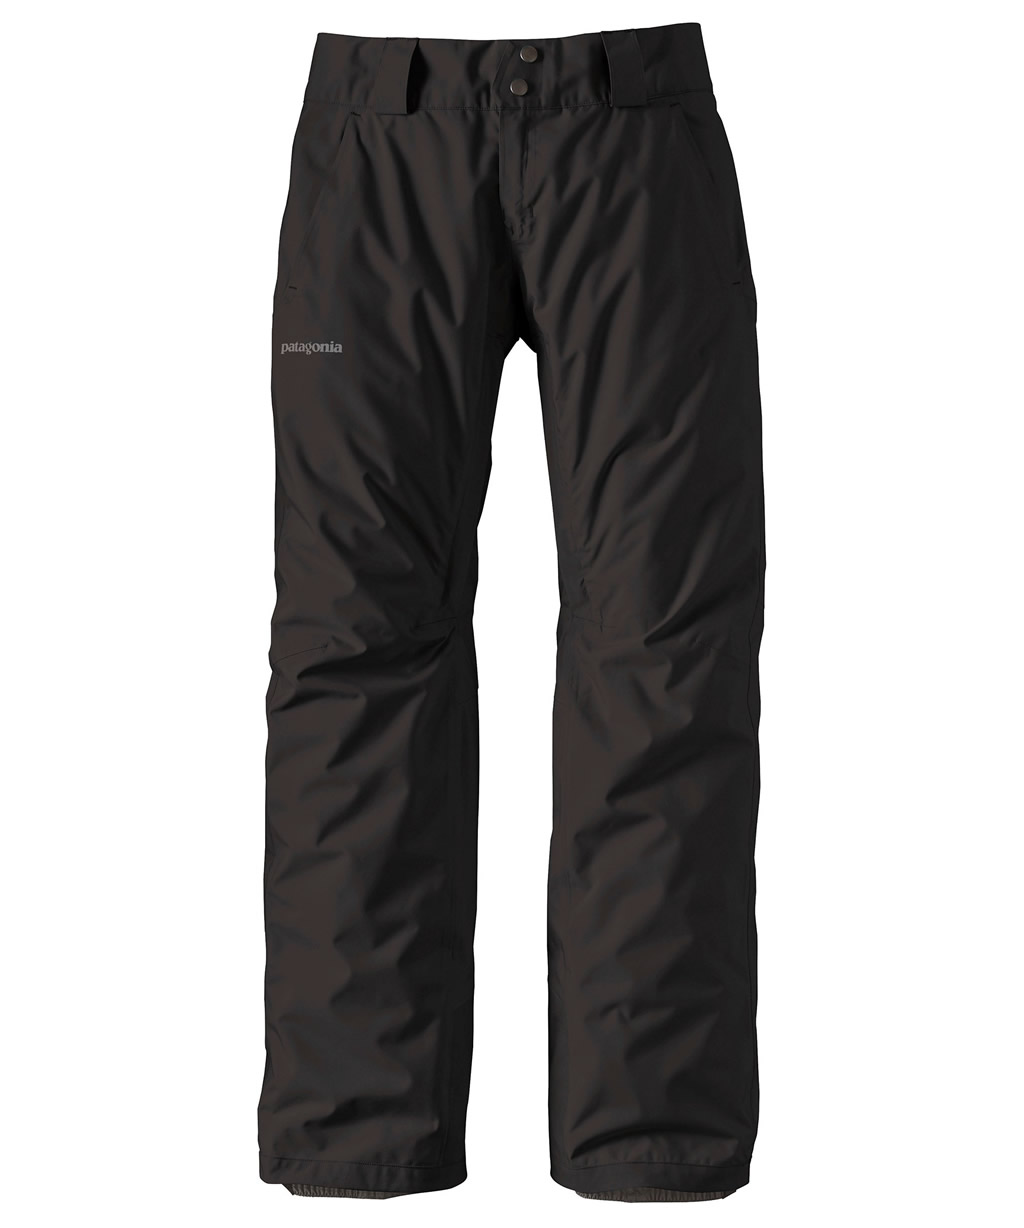 Snowbelle Insulated Snow Pants for Women's by Patagonia